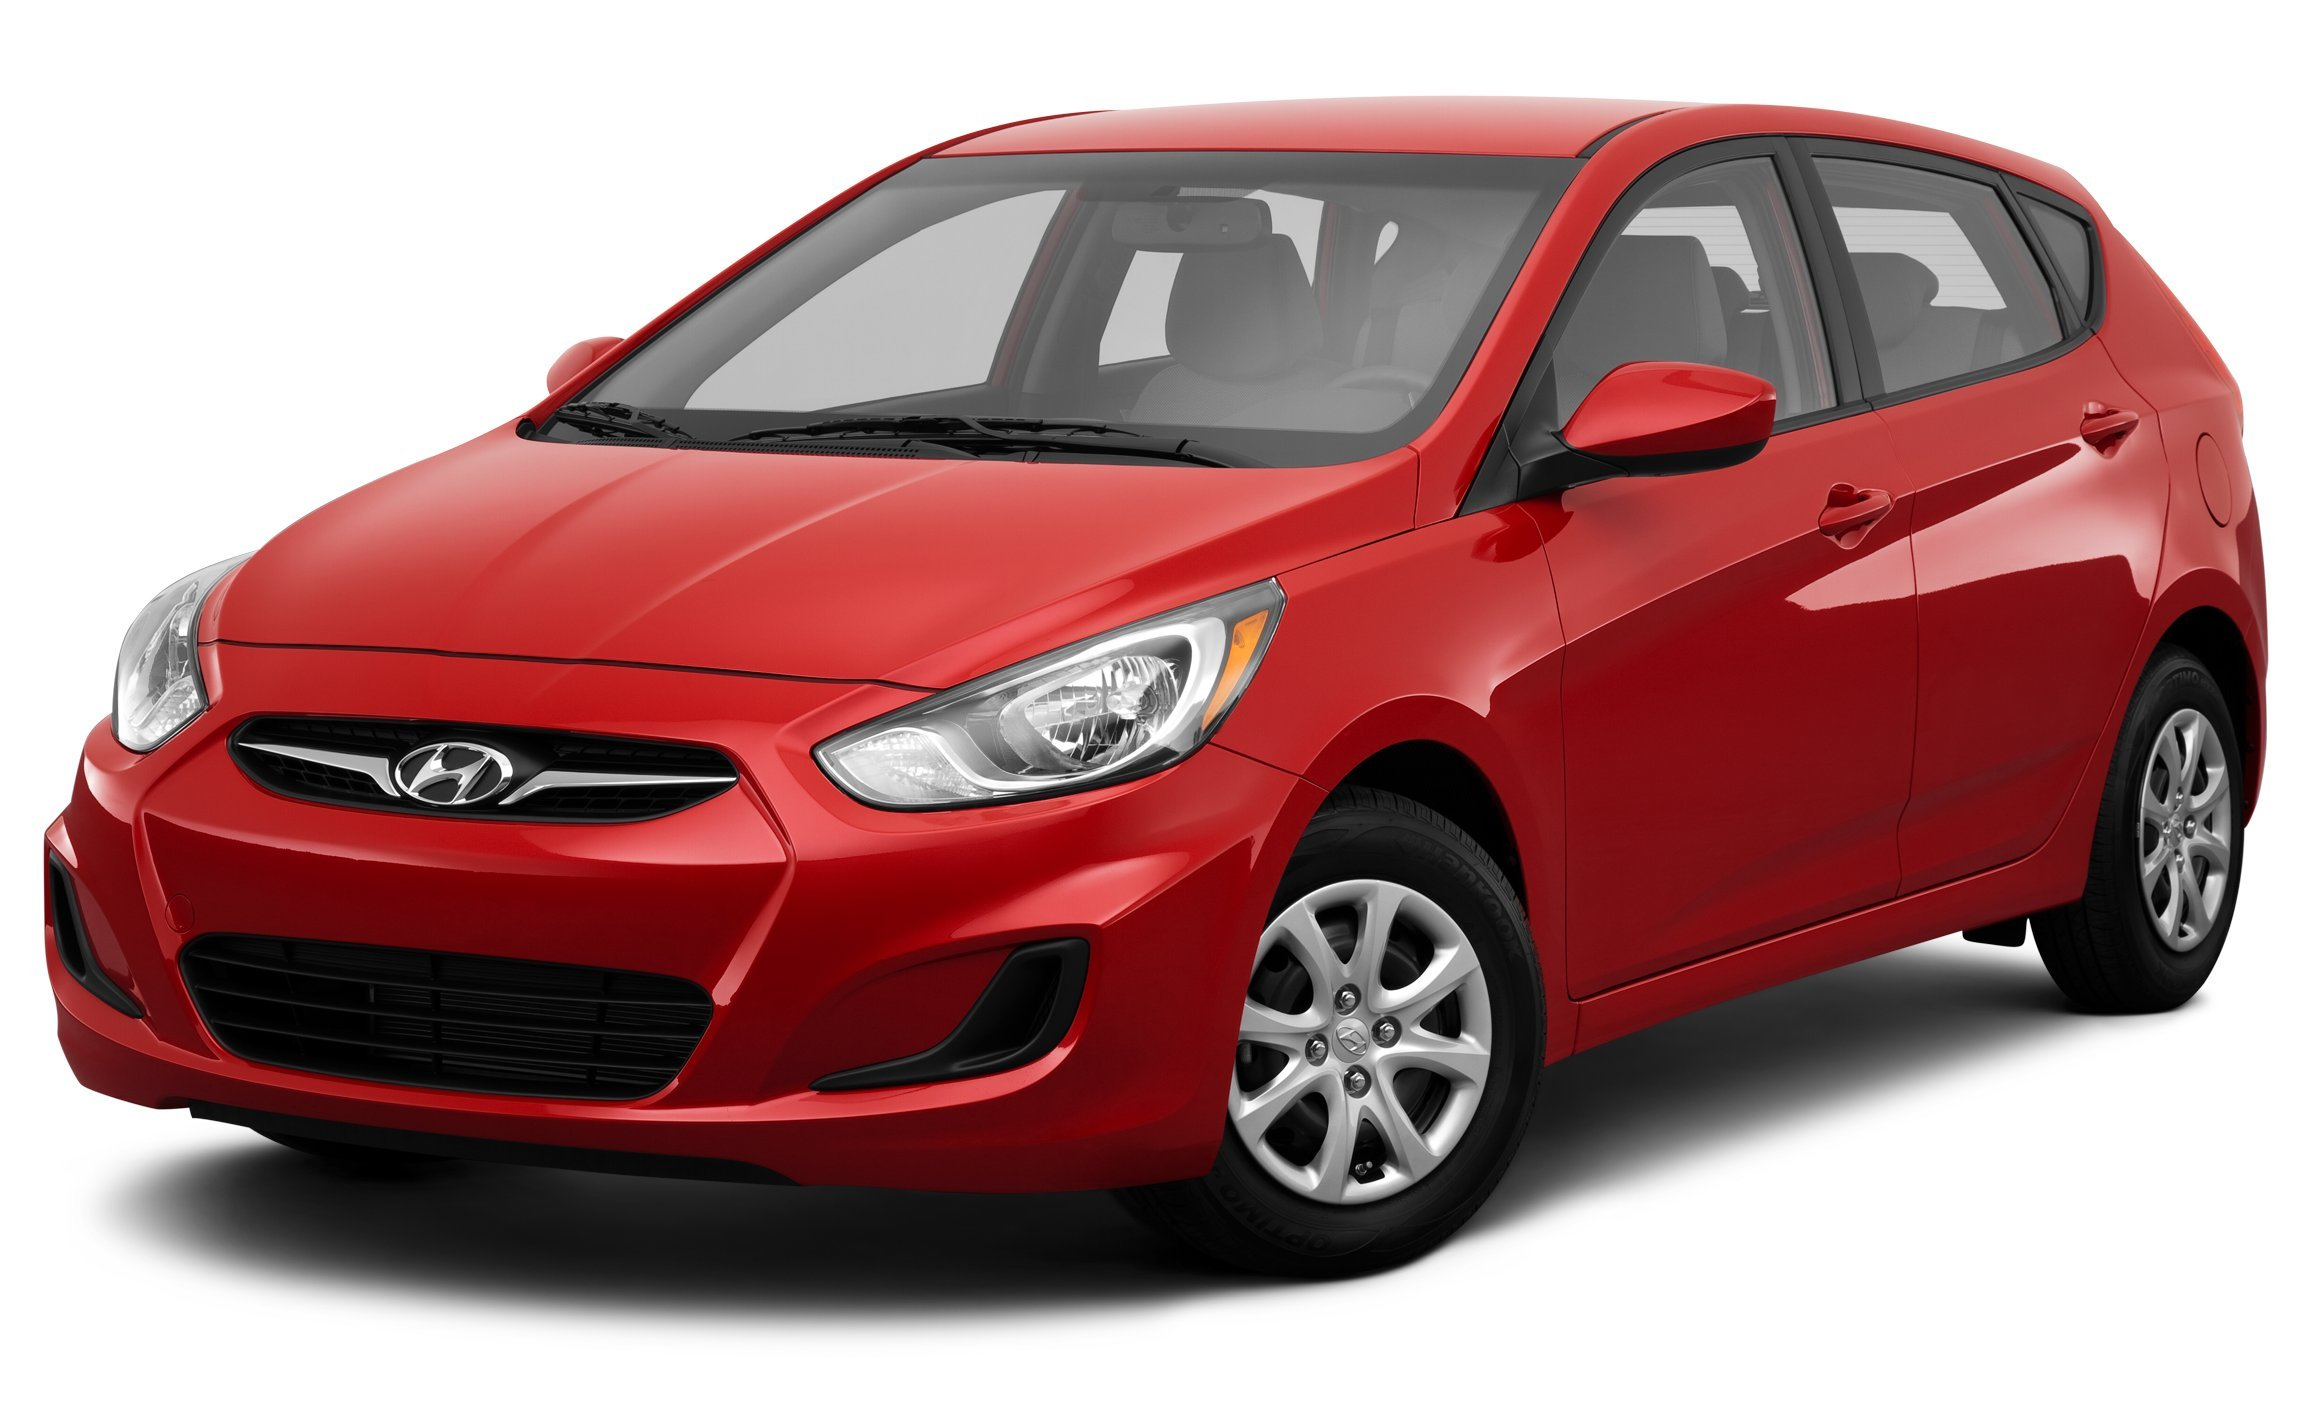 2013 Hyundai Accent GS, 5 Door Hatchback Automatic Transmission ...